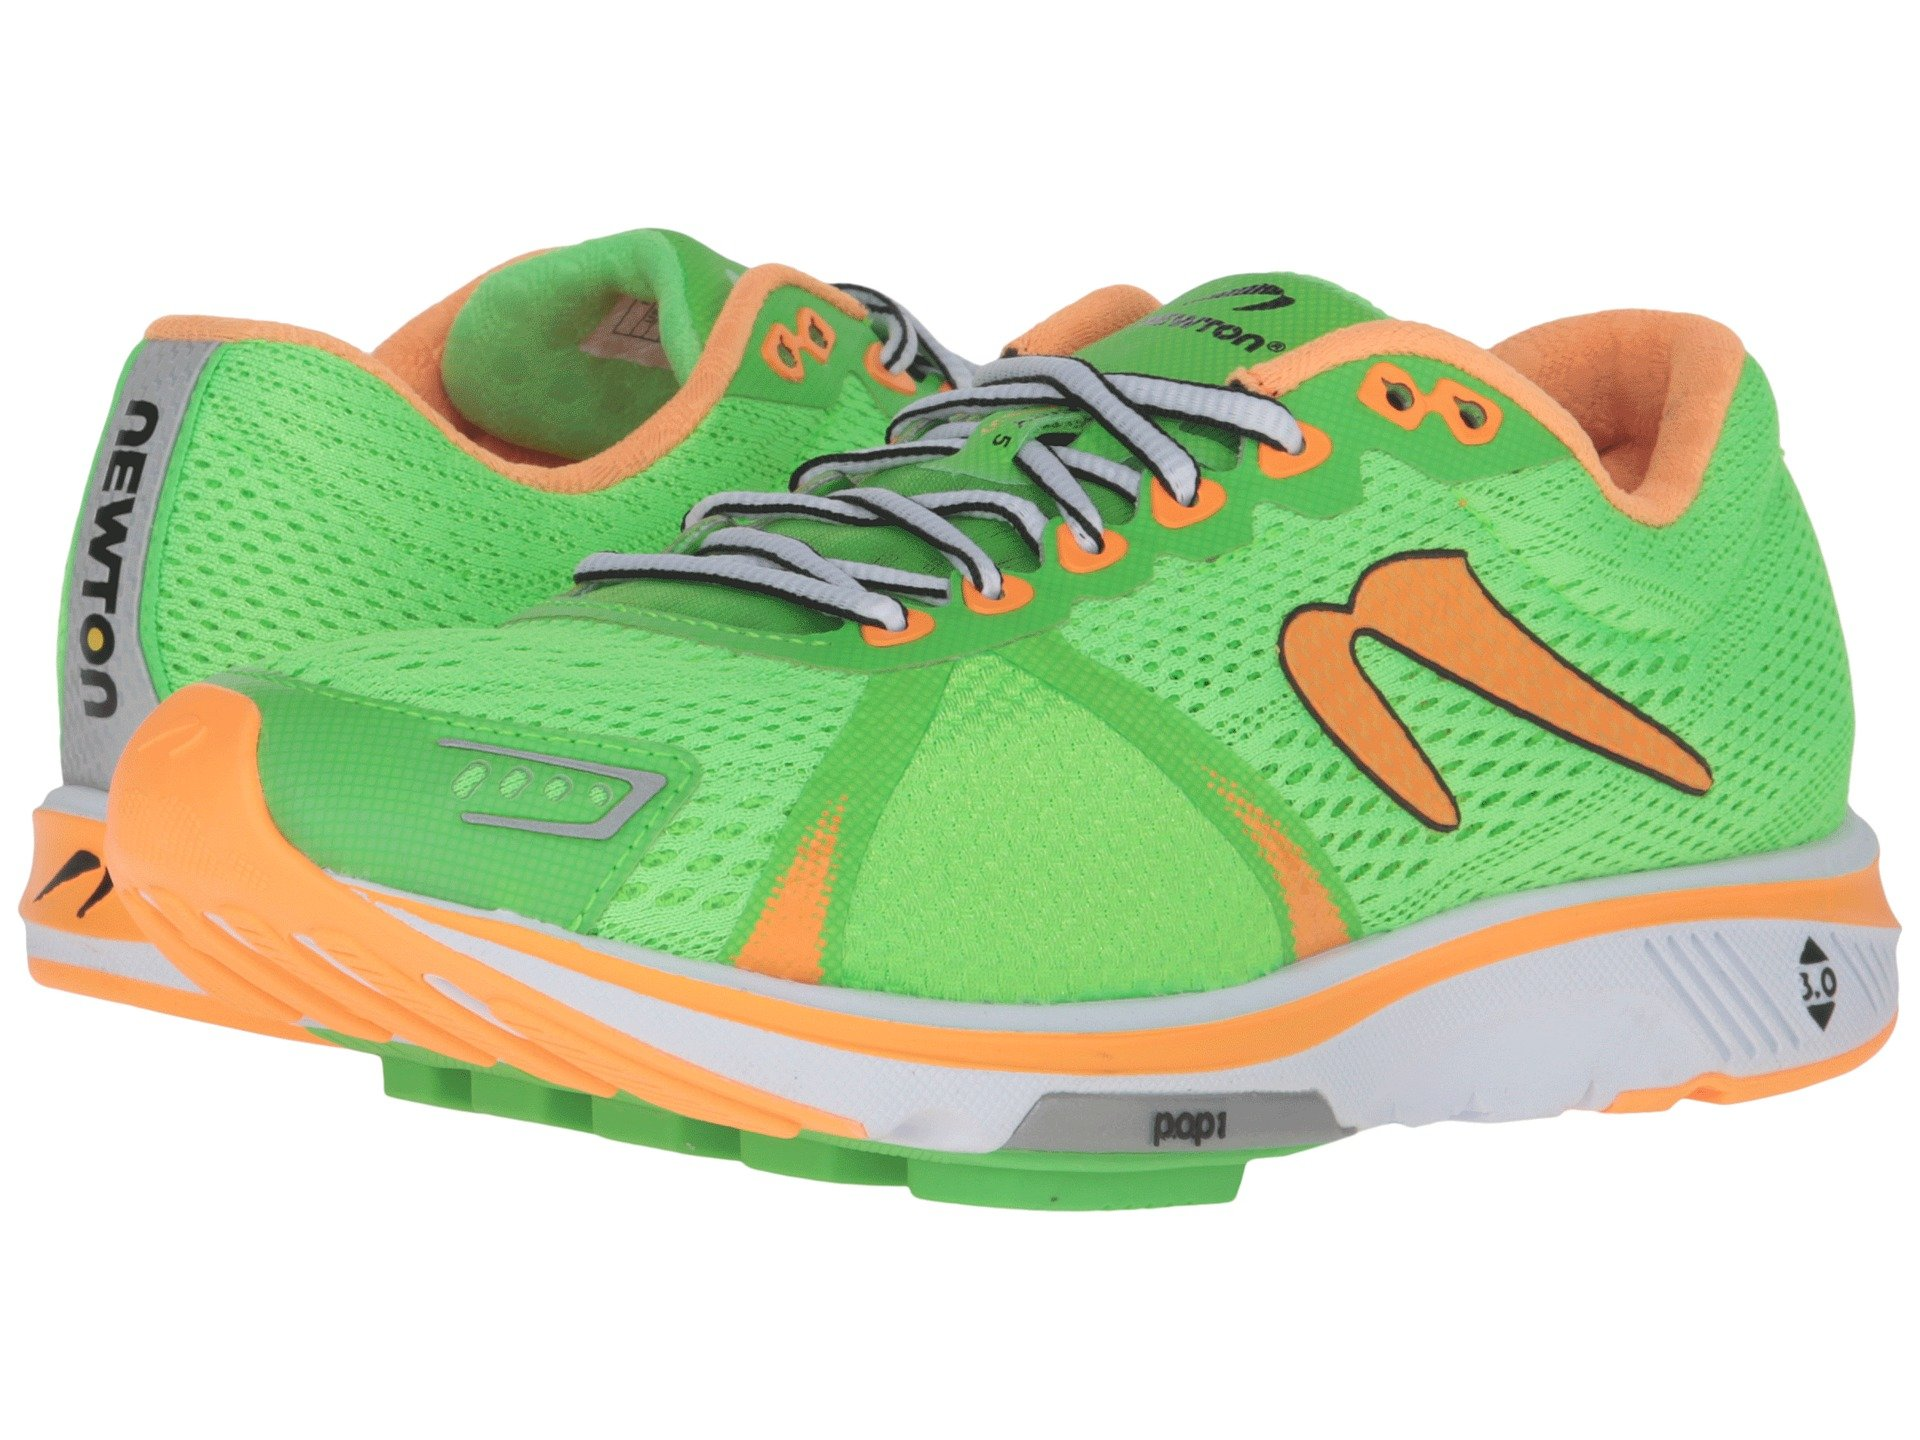 Newton Gravity Running Shoes Clearance